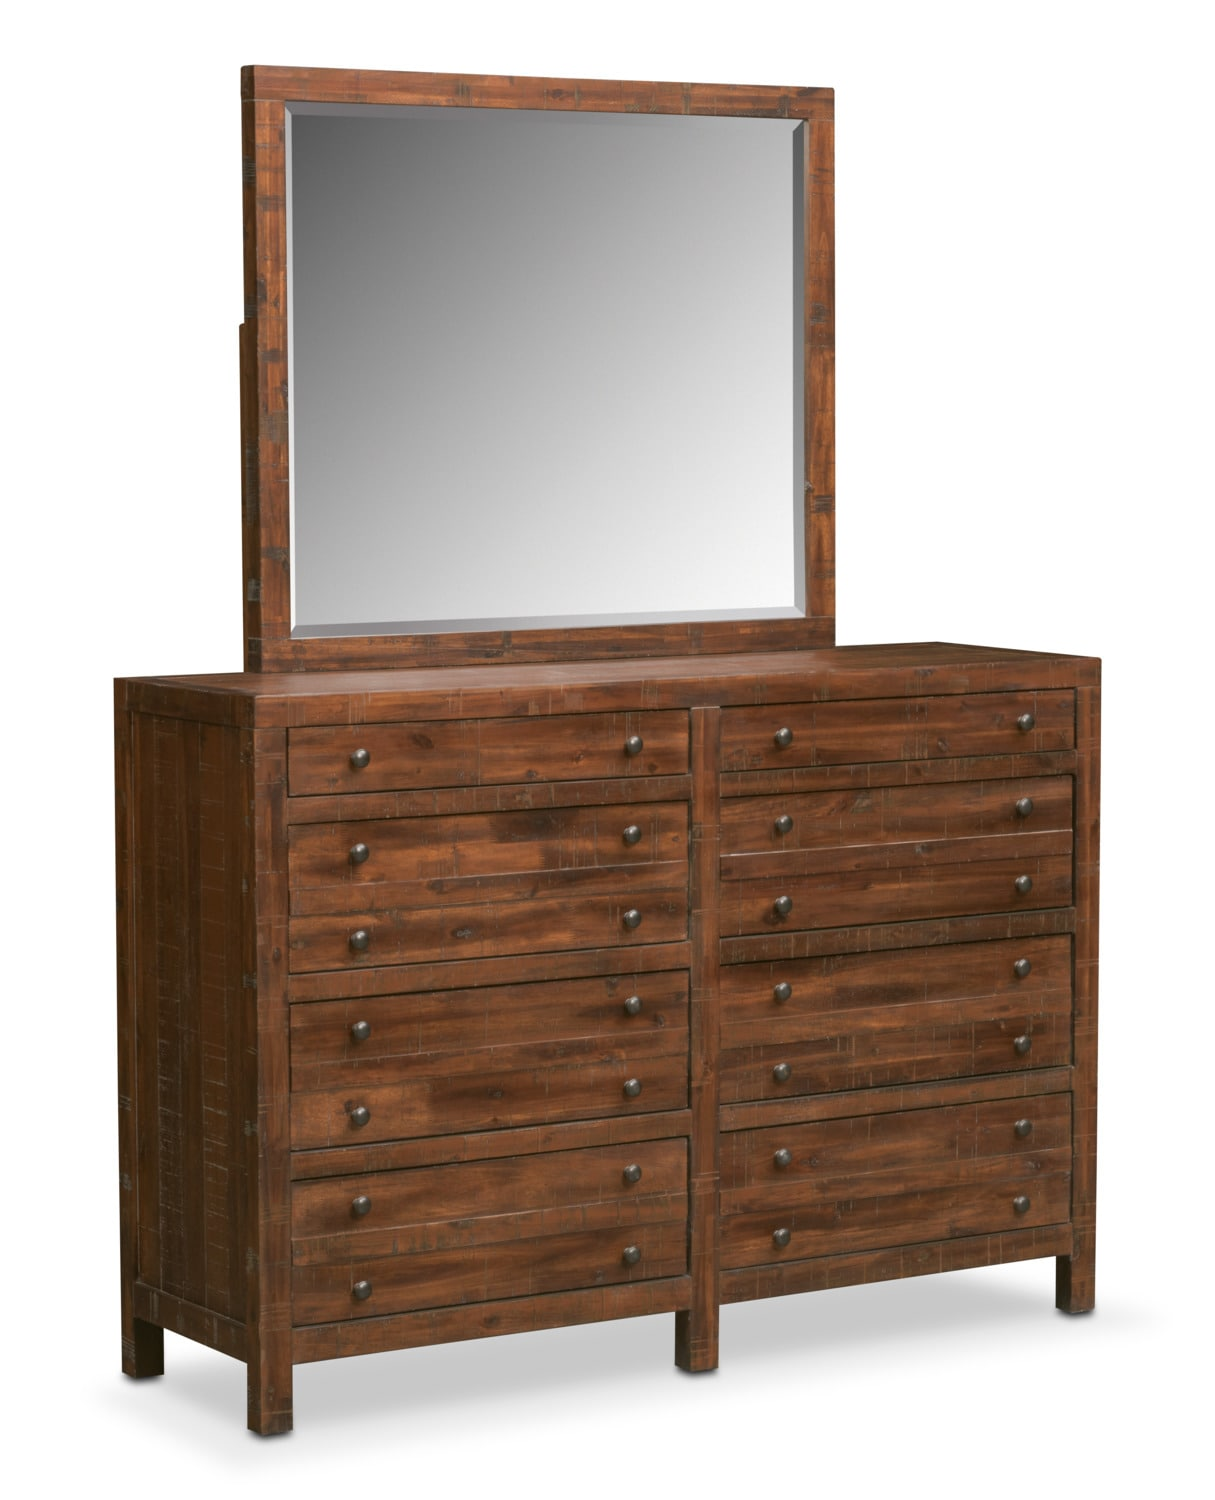 Superieur Pictures Of Value Of Mahogany Furniture